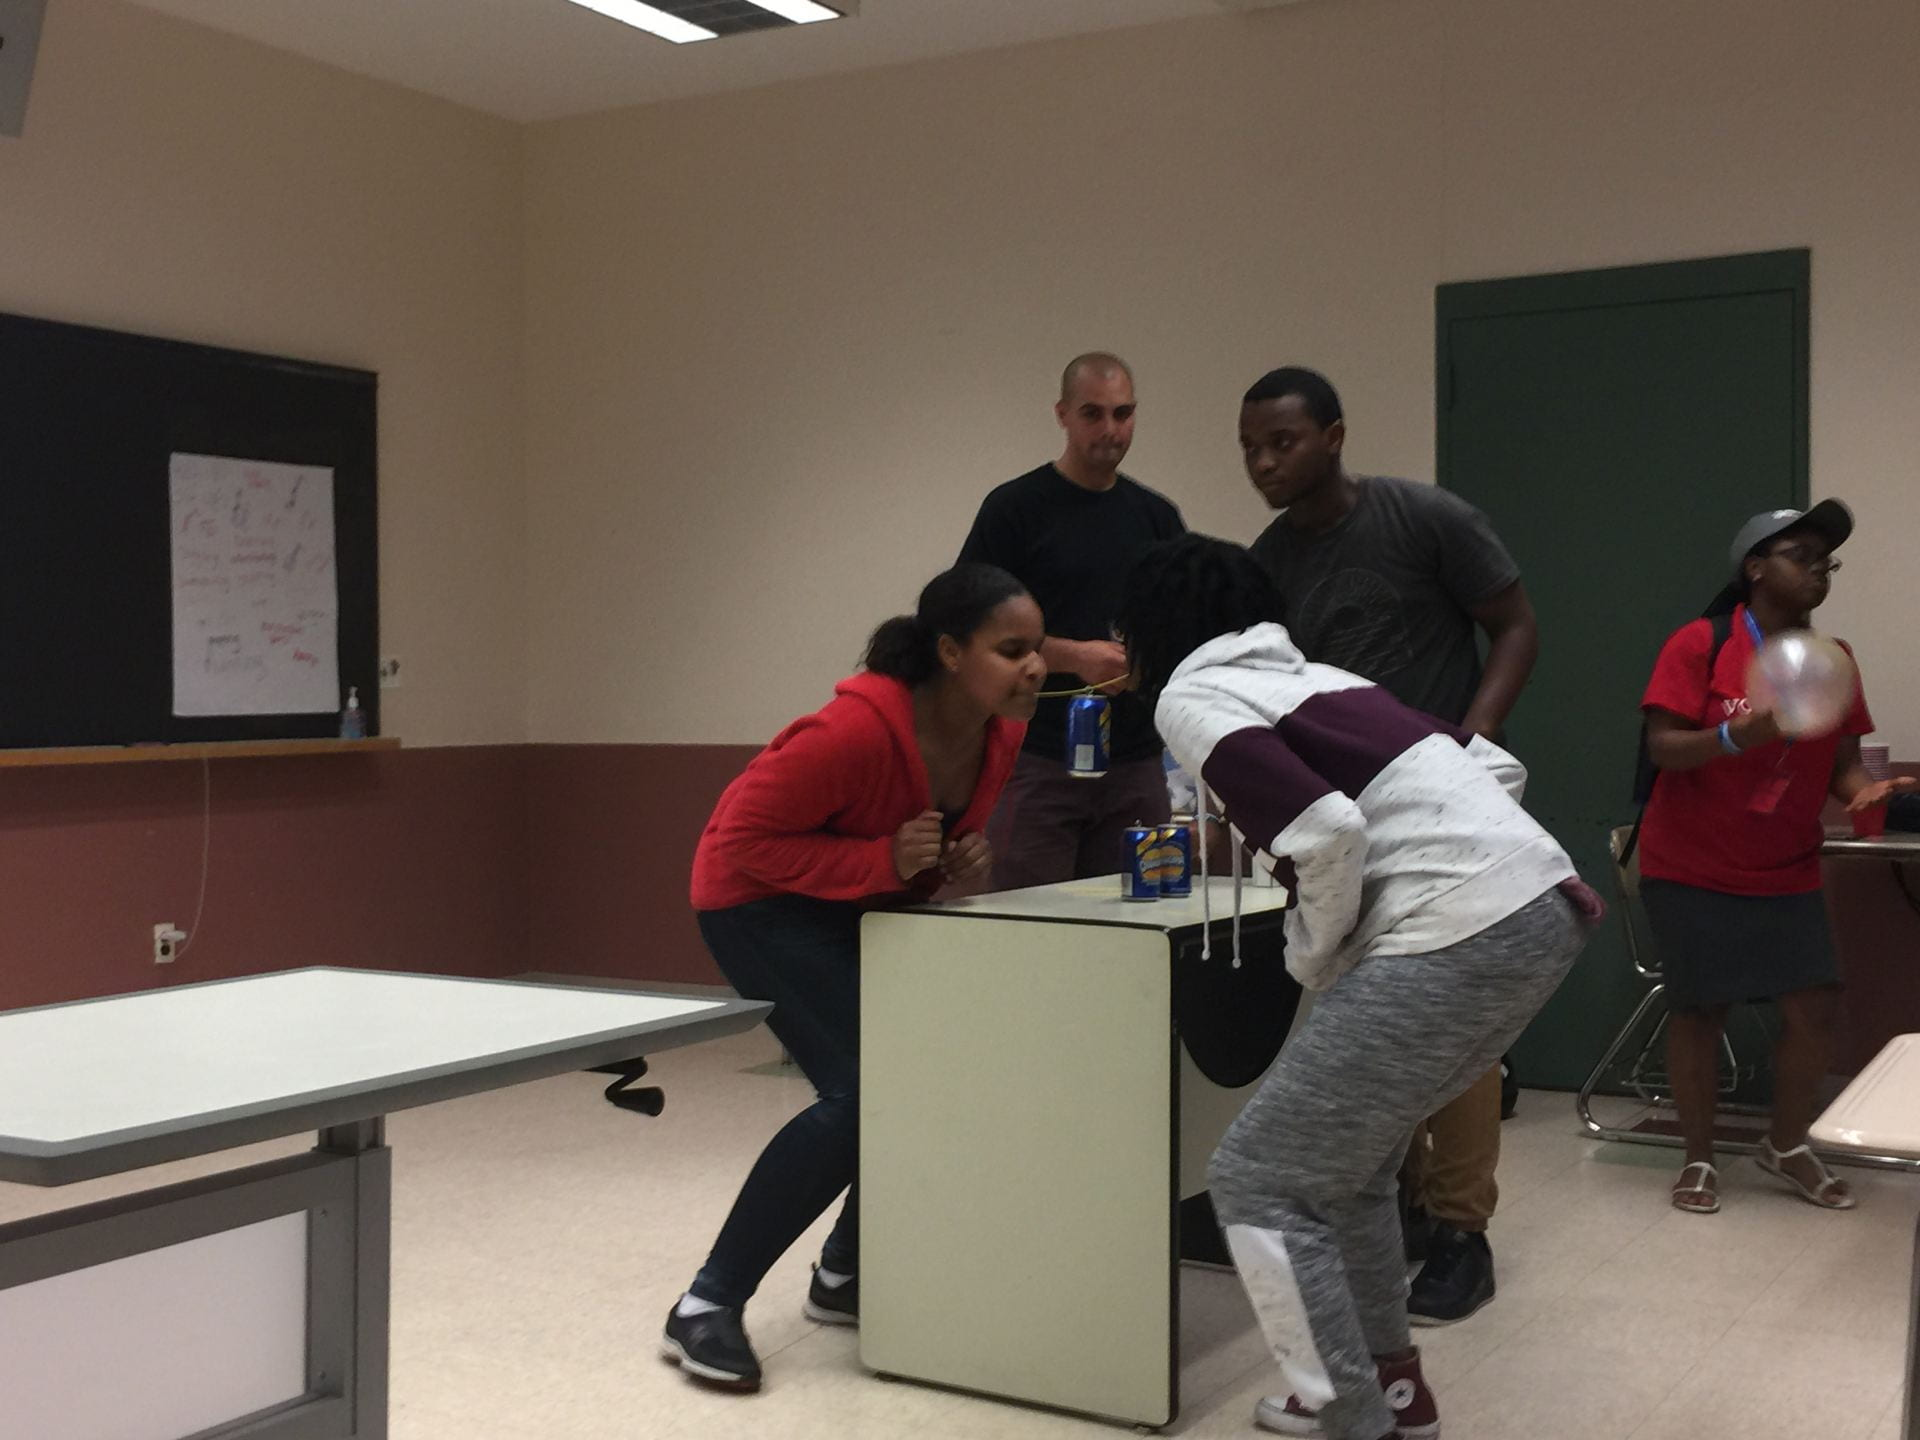 students try to build a tower from Pepsi bottles, balancing them on a single spaghetti